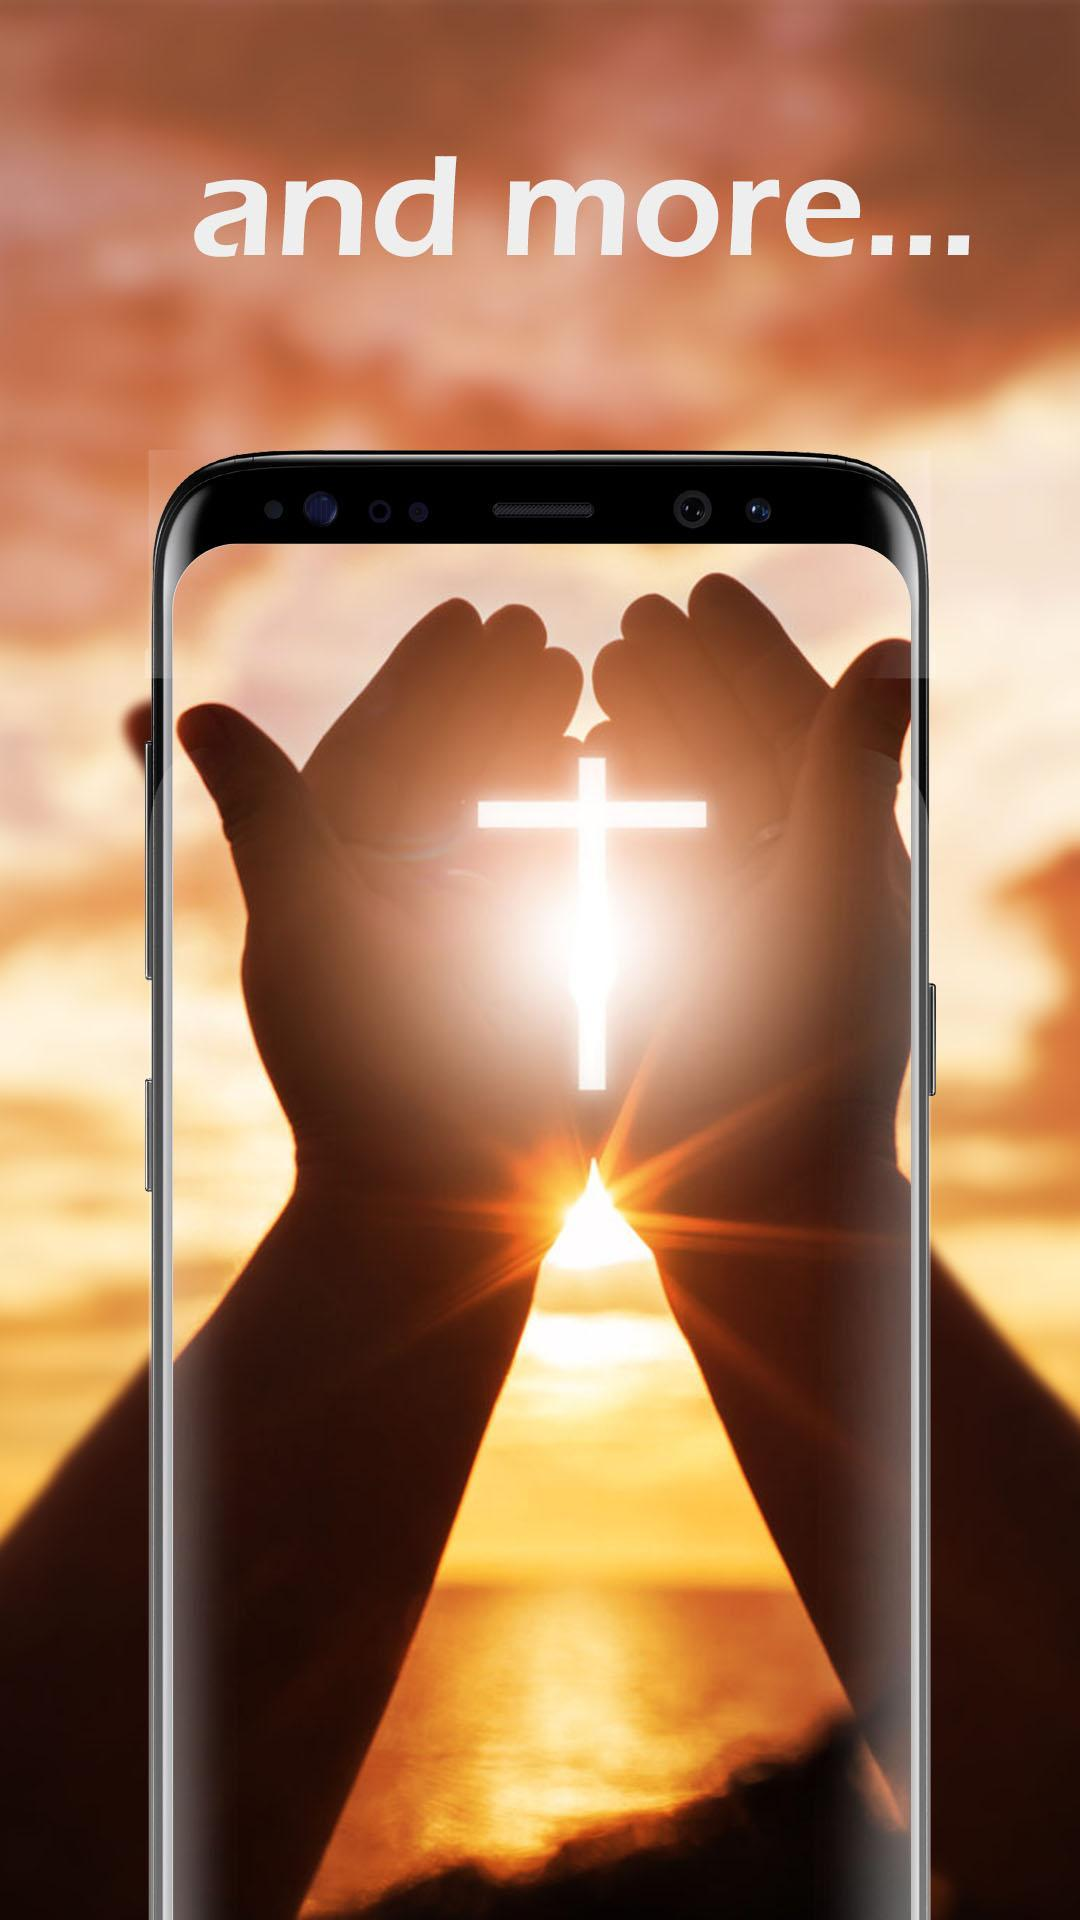 Catholic Wallpapers Top 1 Christian Wallpaper For Android